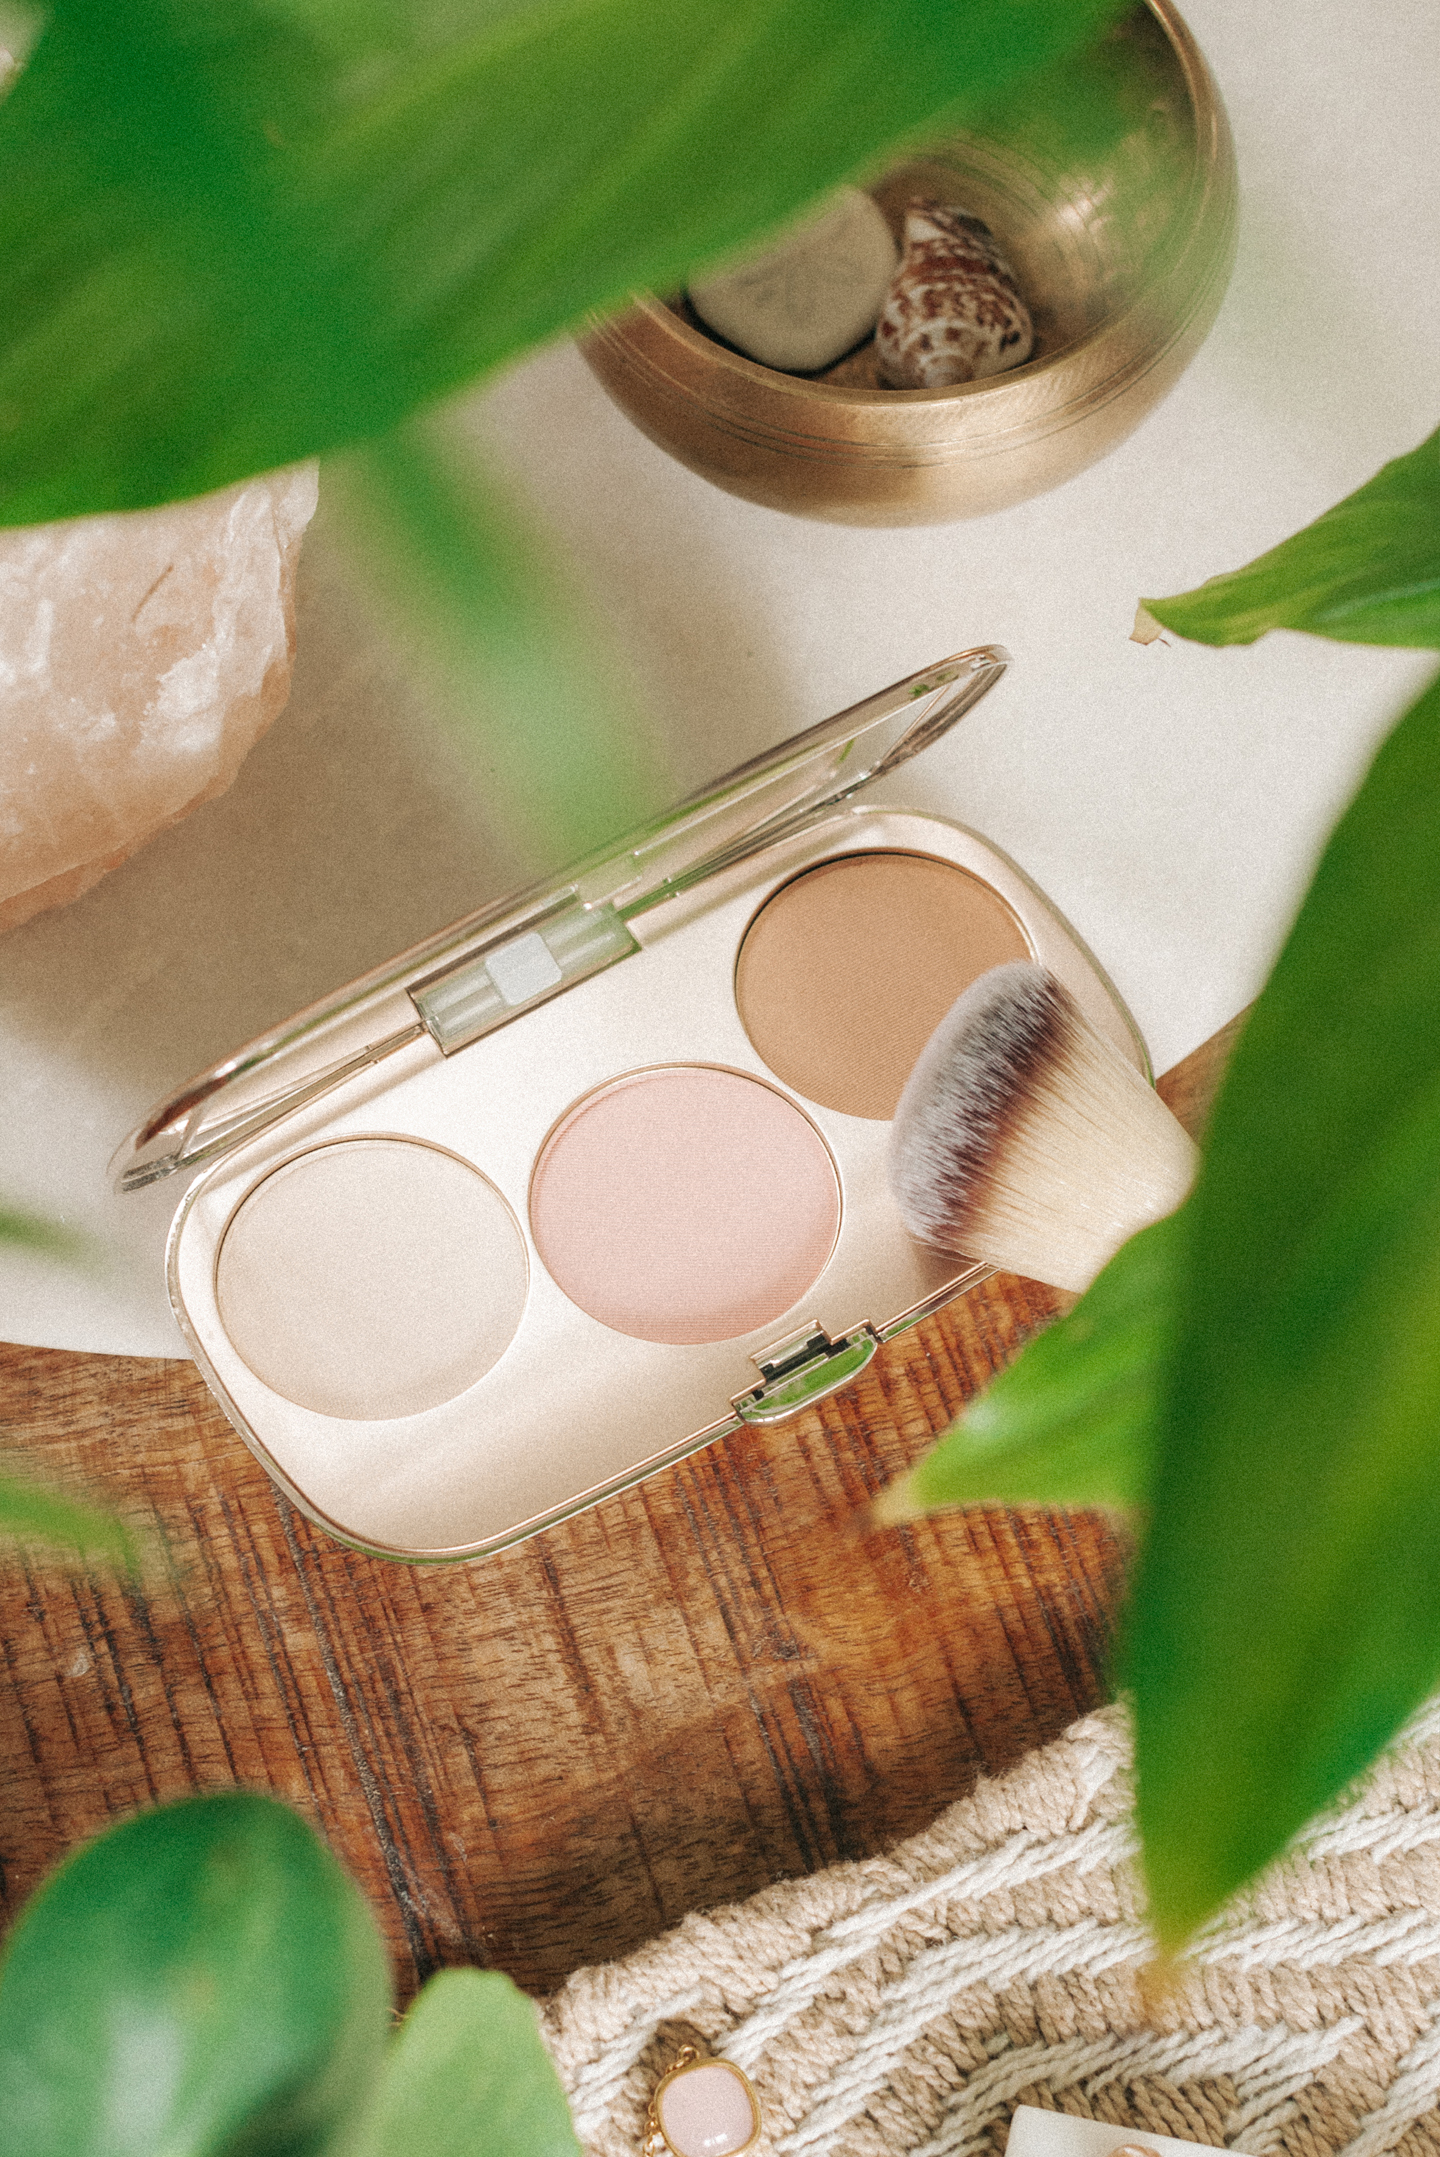 jane iredale Great Shape Contour Kit Blending/Contouring brush